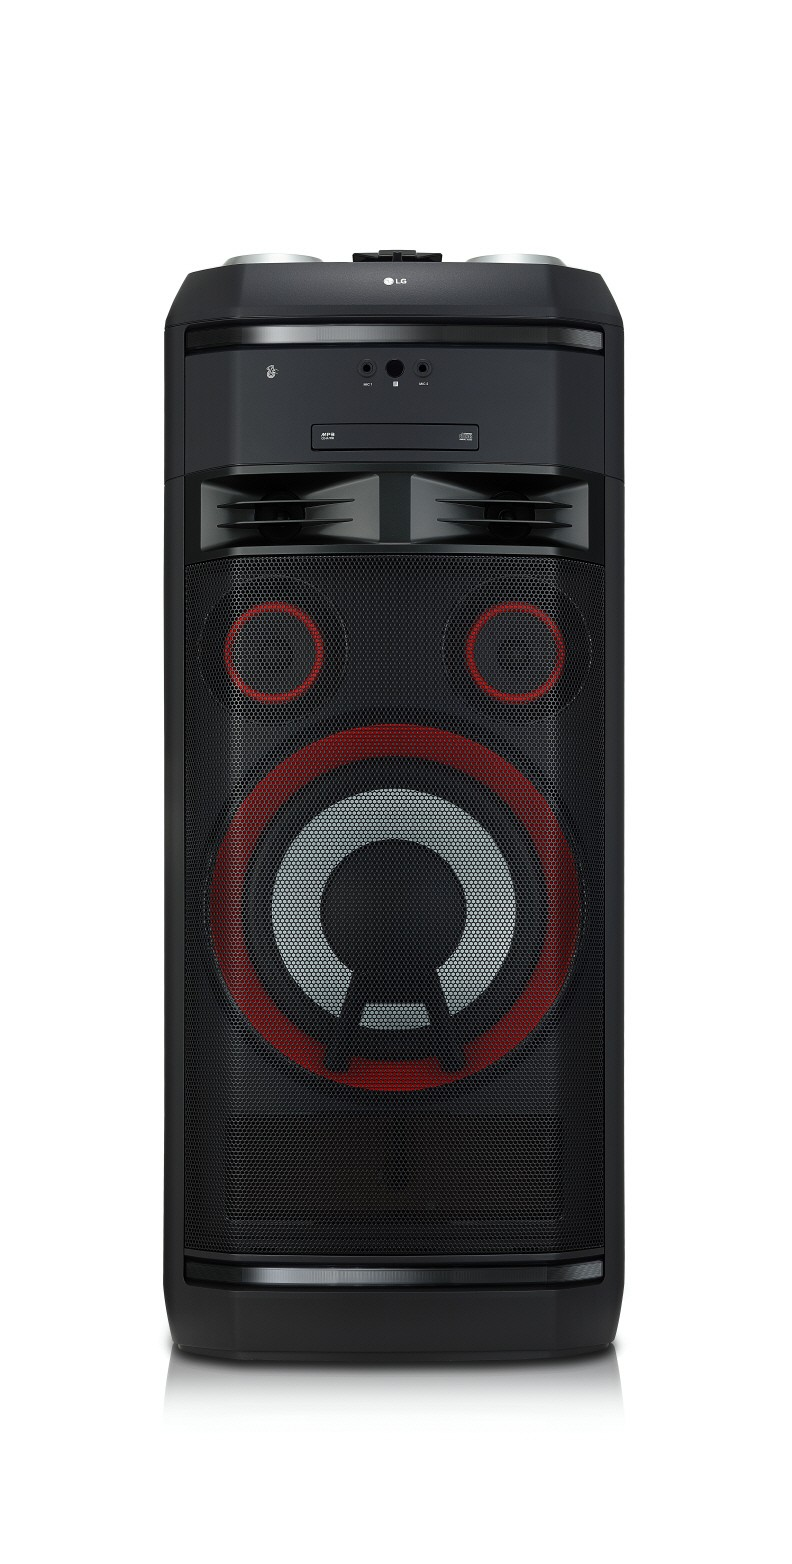 A front view of LG XBOOM model CL100